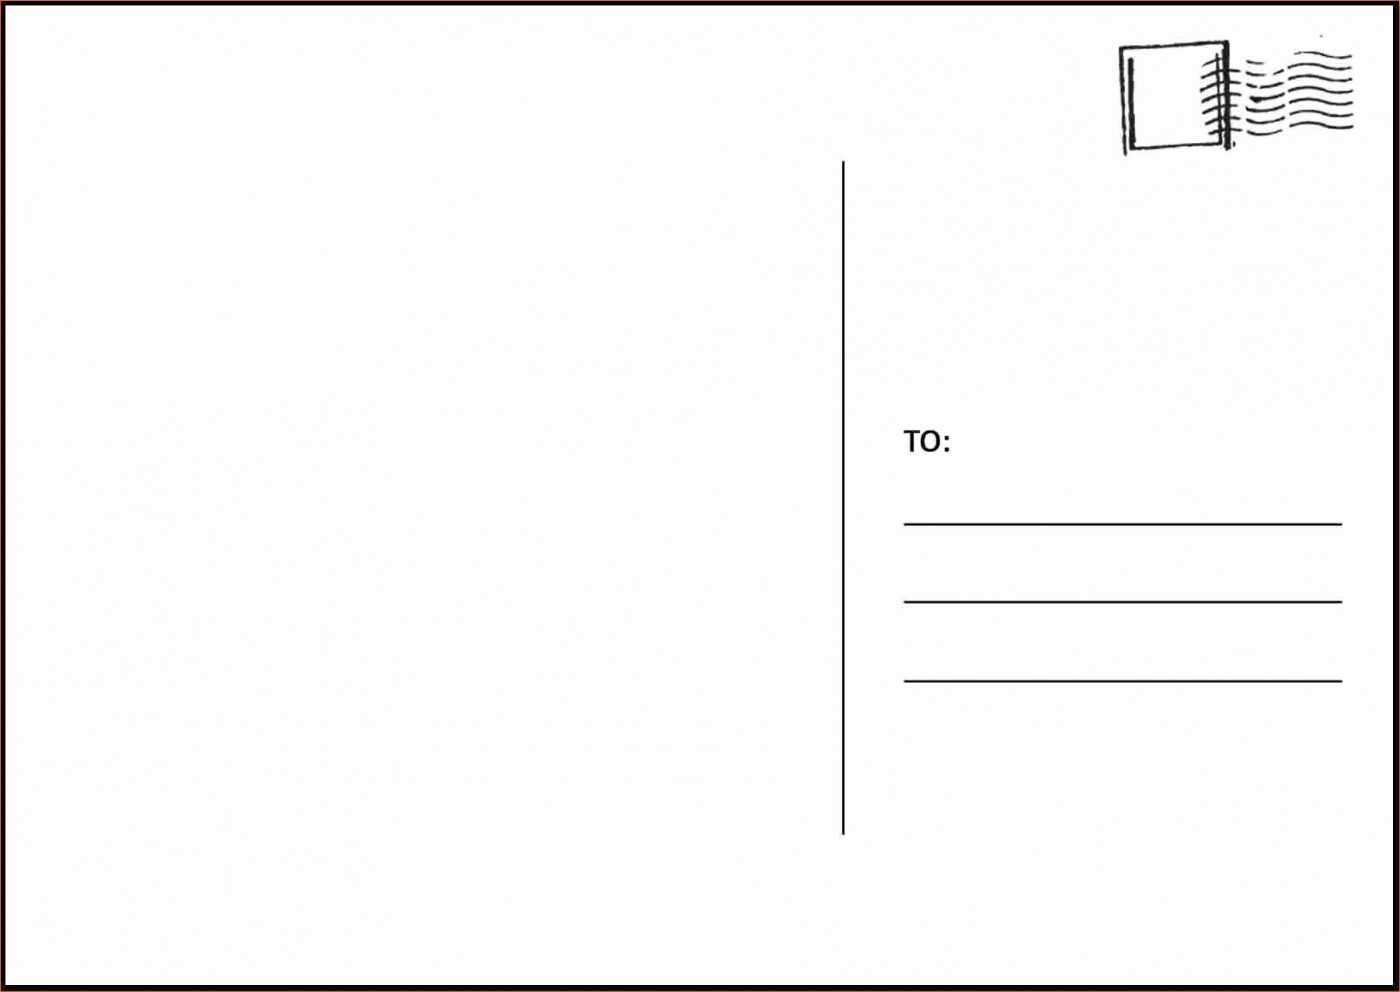 003 Amazing Postcard Layout For Microsoft Word Picture  Busines Template1400